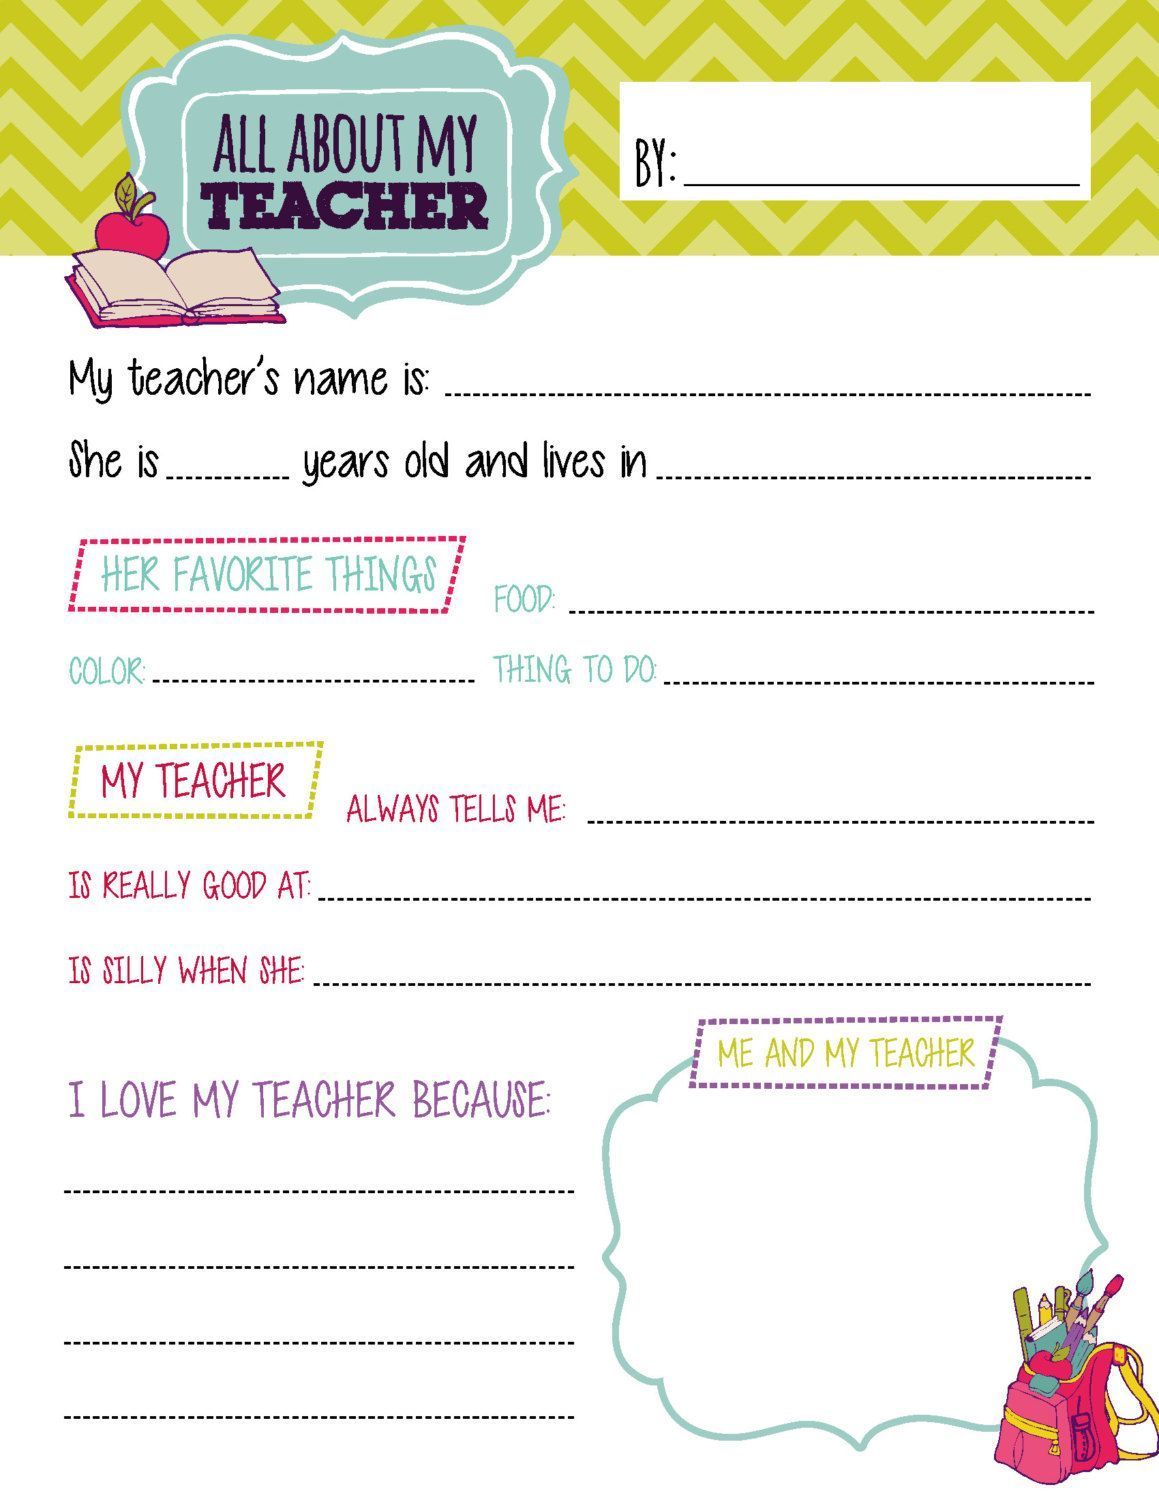 Image Result For All About My Teacher Template